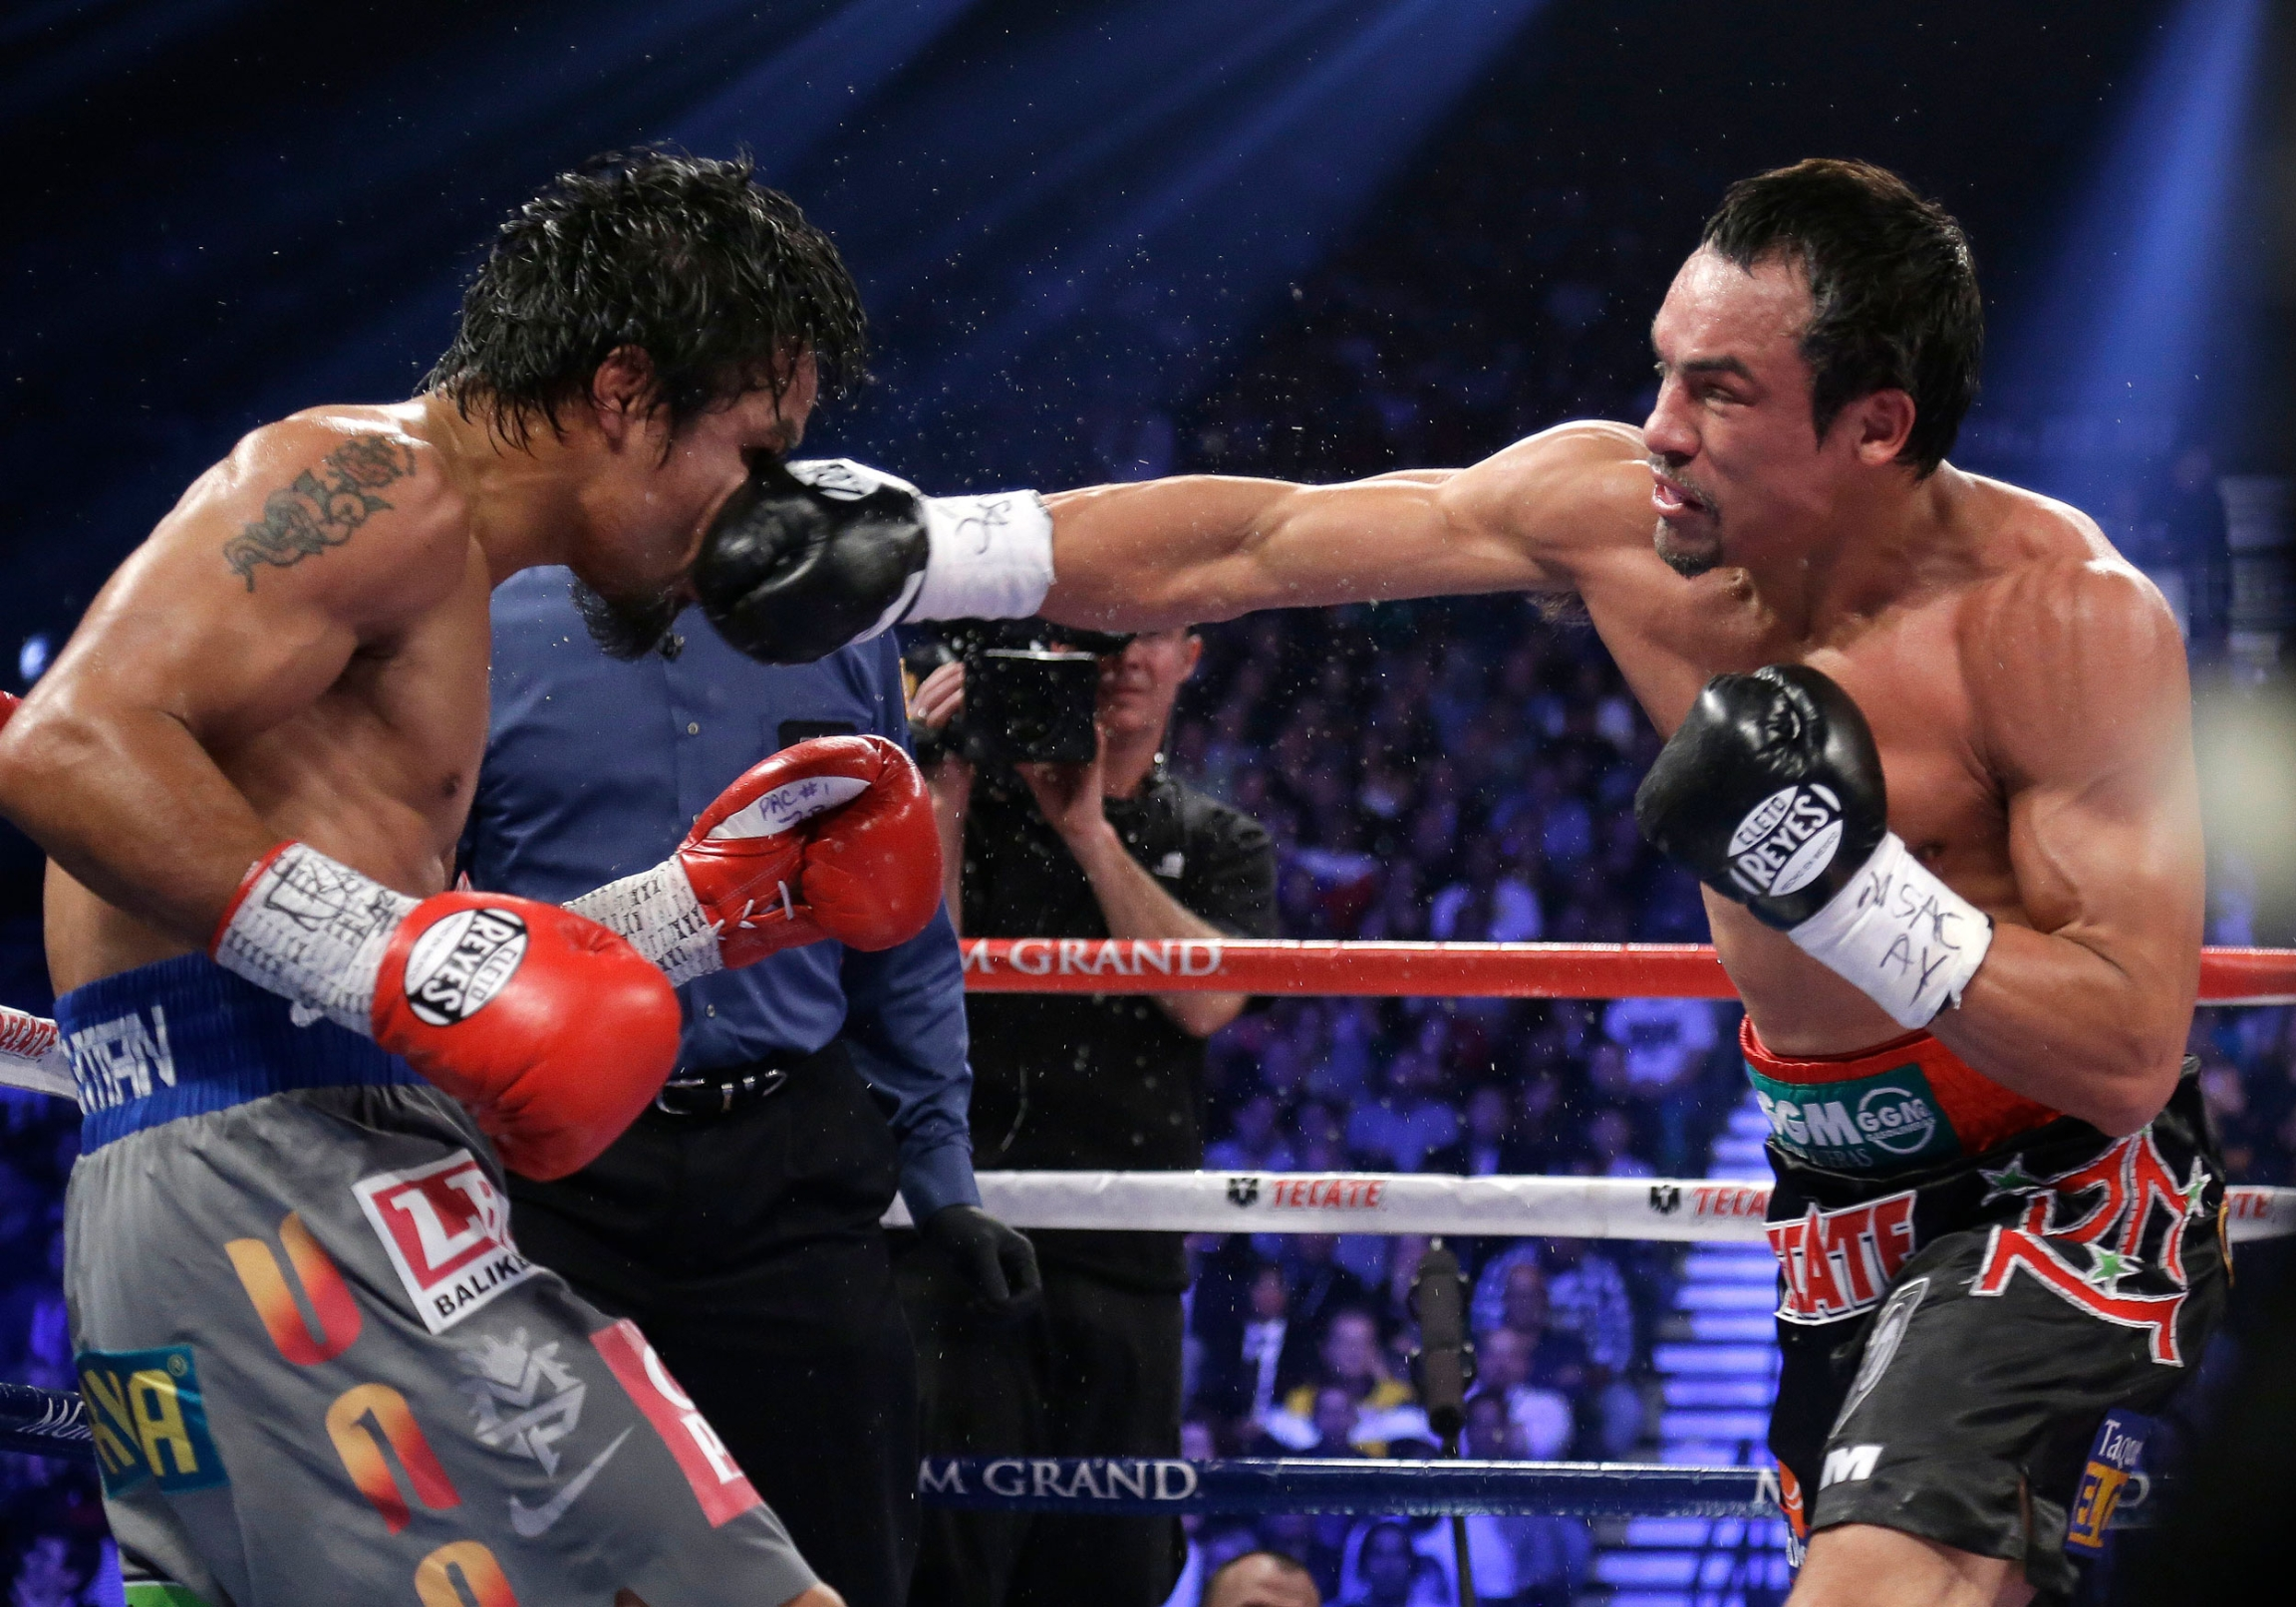 In this Dec. 8, 2012 file photo, Mexico's Juan Manuel Marquez lands a right to the head of Manny Pacquiao, from the Philippines, during their WBO world welterweight fight, in Las Vegas.